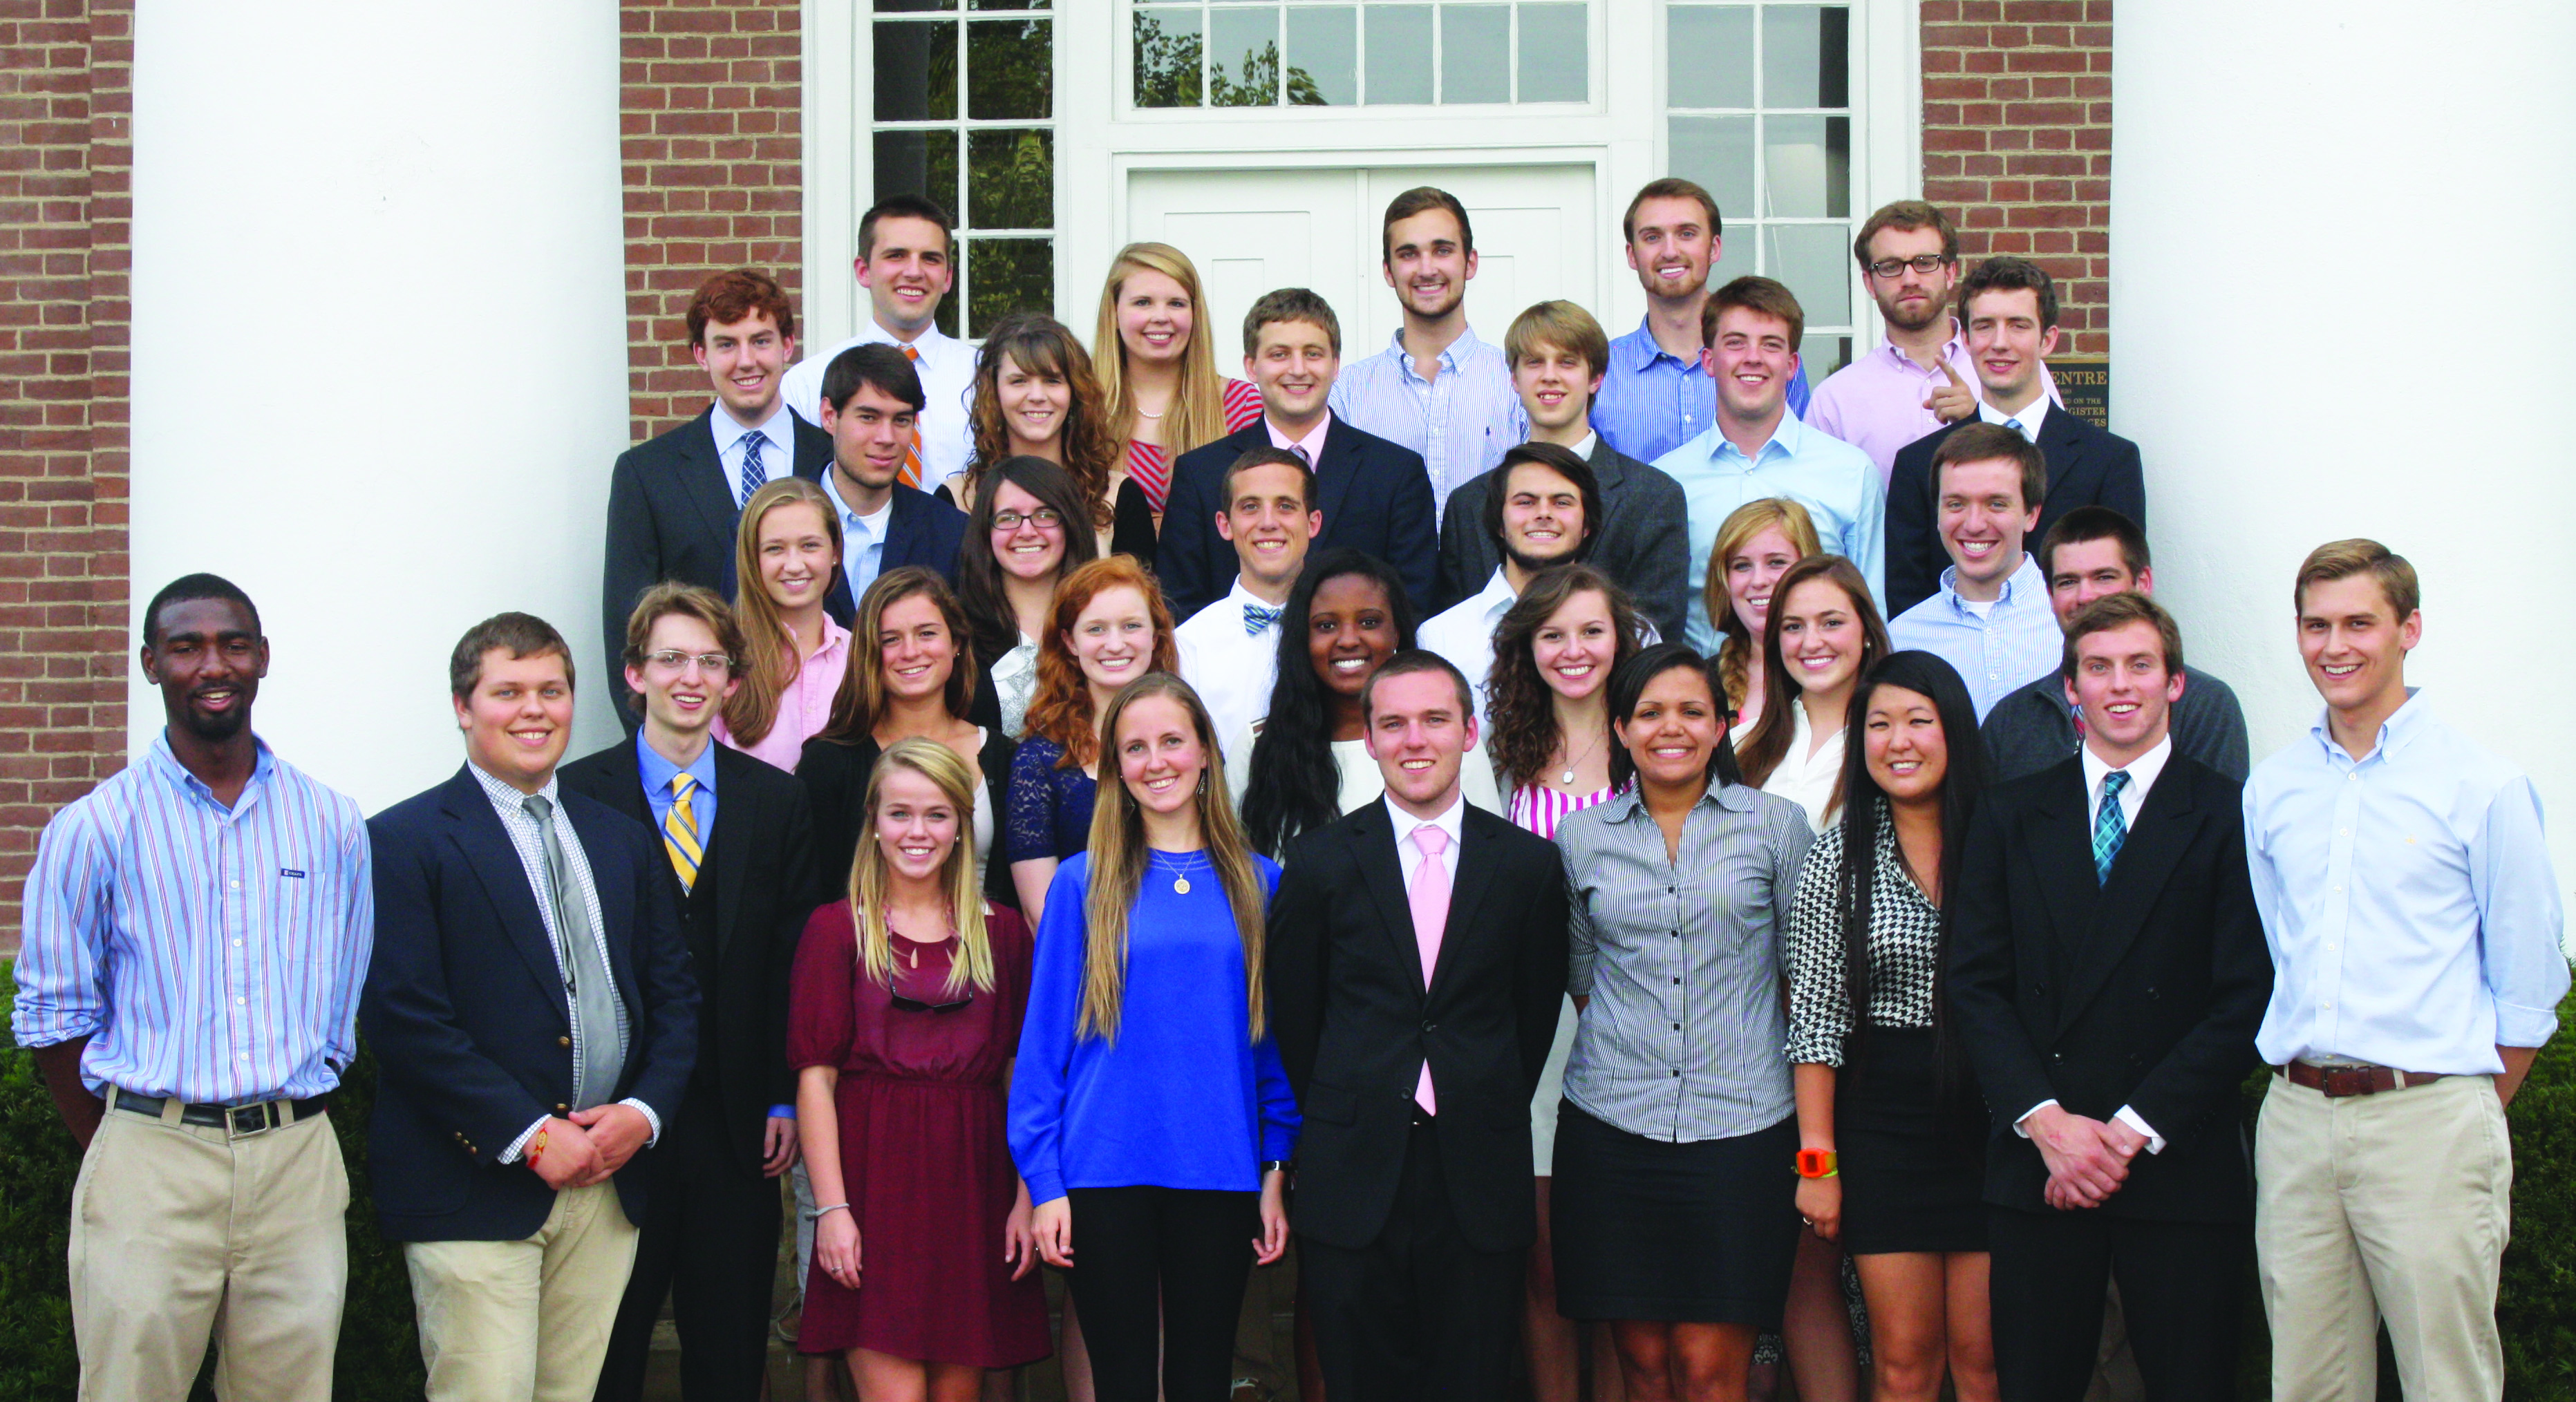 Student Government Elections Suggest a Positive Direction for Upcoming Year